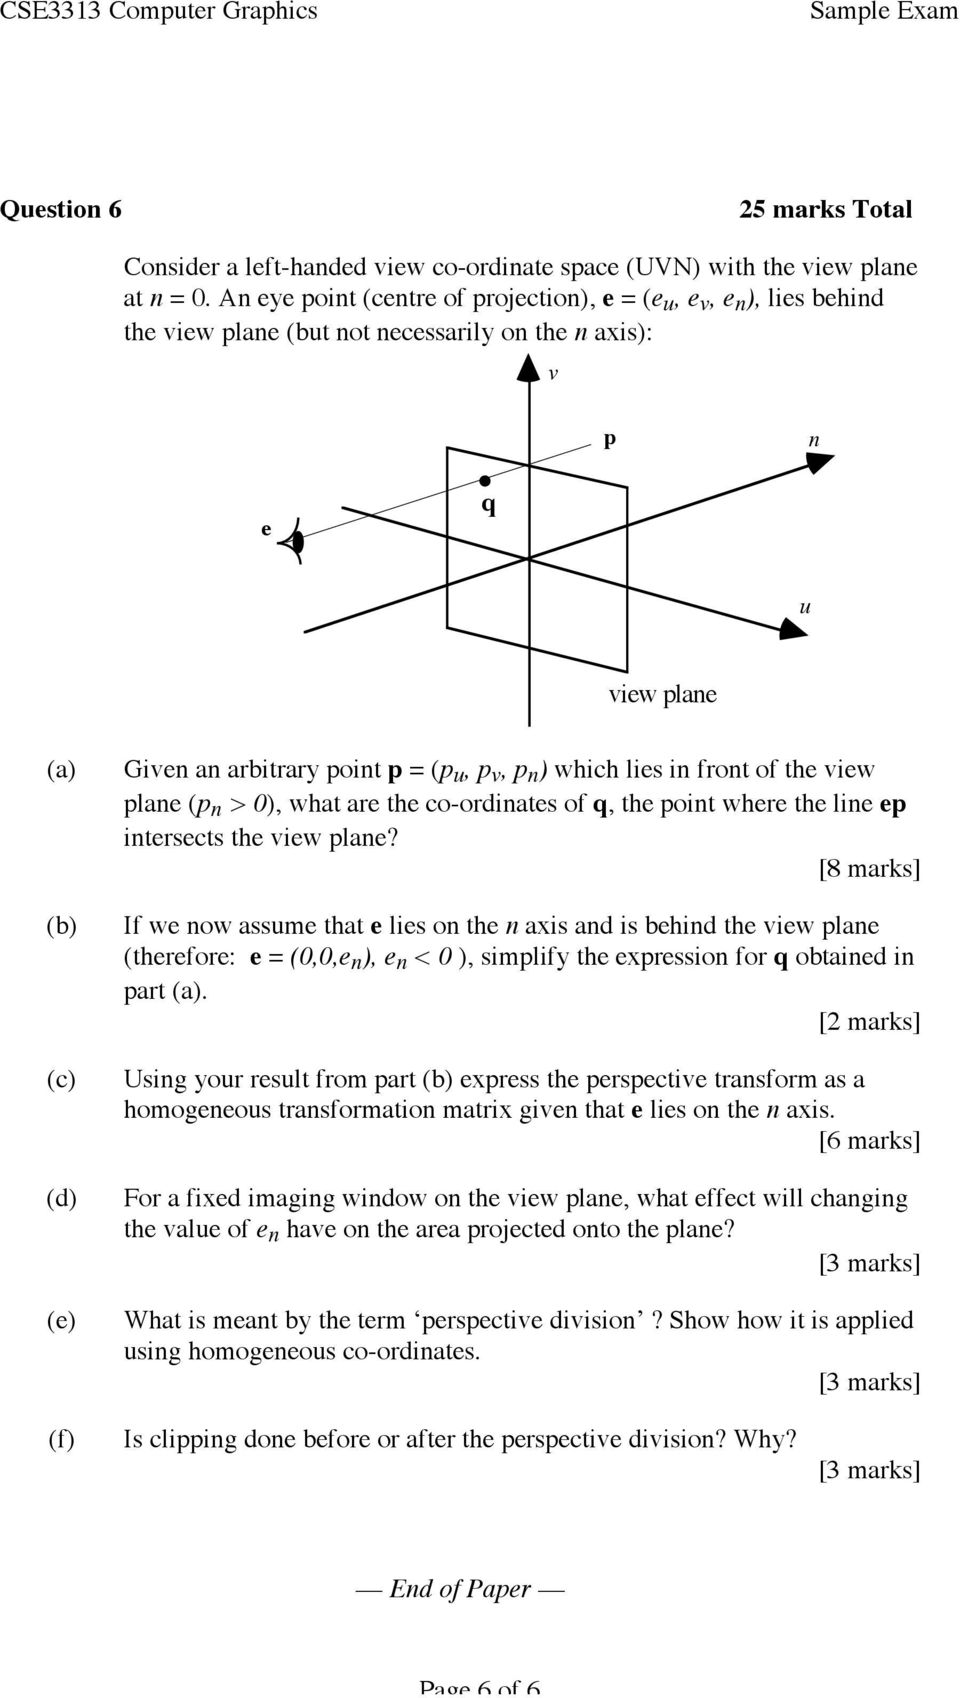 lies in front of the view plane (p n > 0), what are the co-ordinates of q, the point where the line ep intersects the view plane?